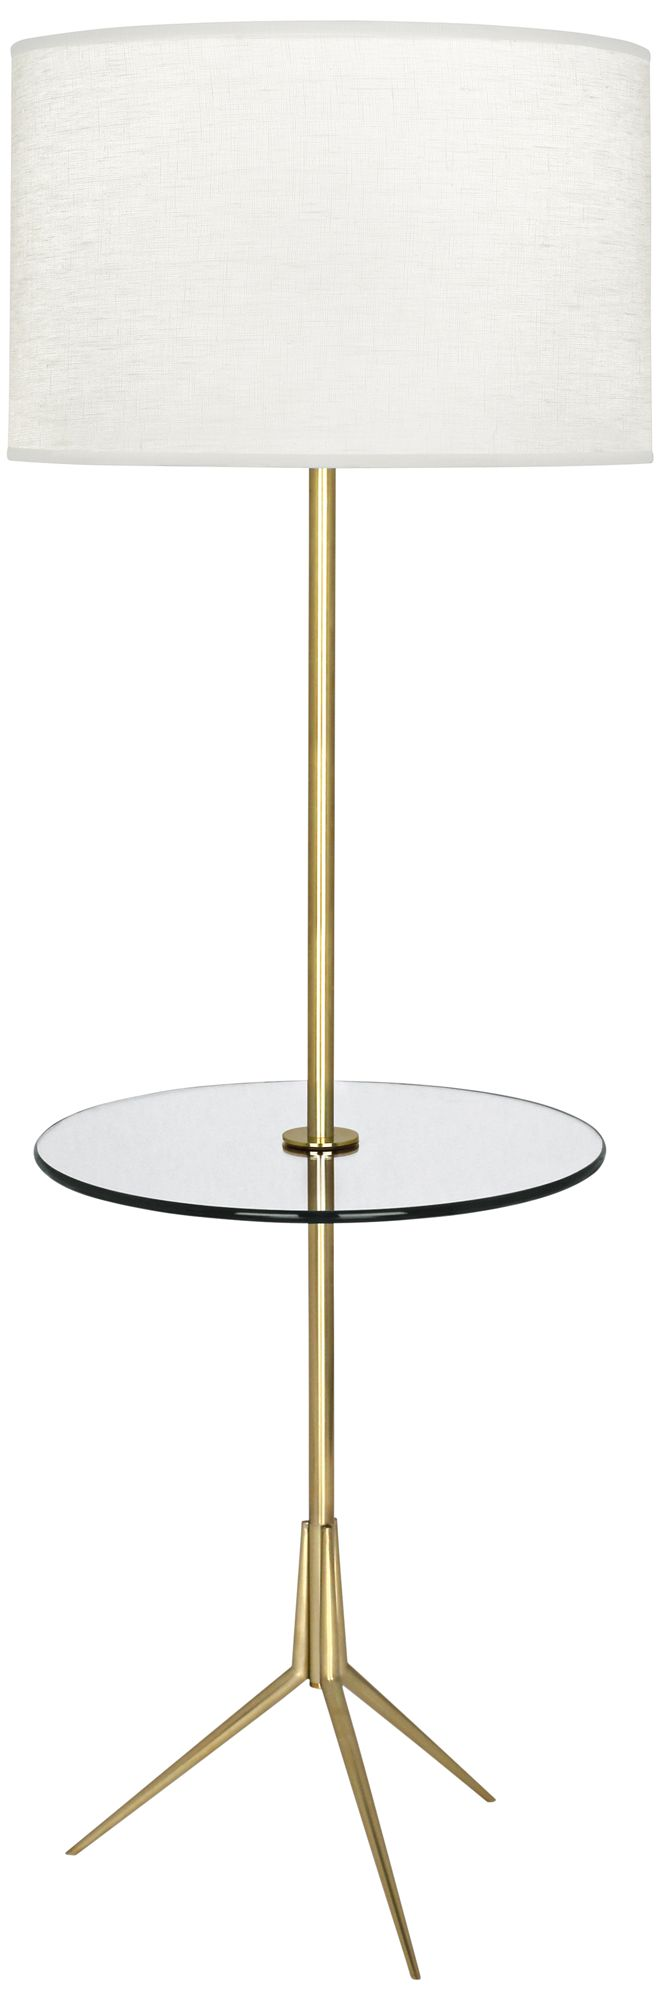 contemporary with tray table floor l s l s plus Recessed Under Cabinet Lighting robert abbey martin modern brass floor l with glass tray